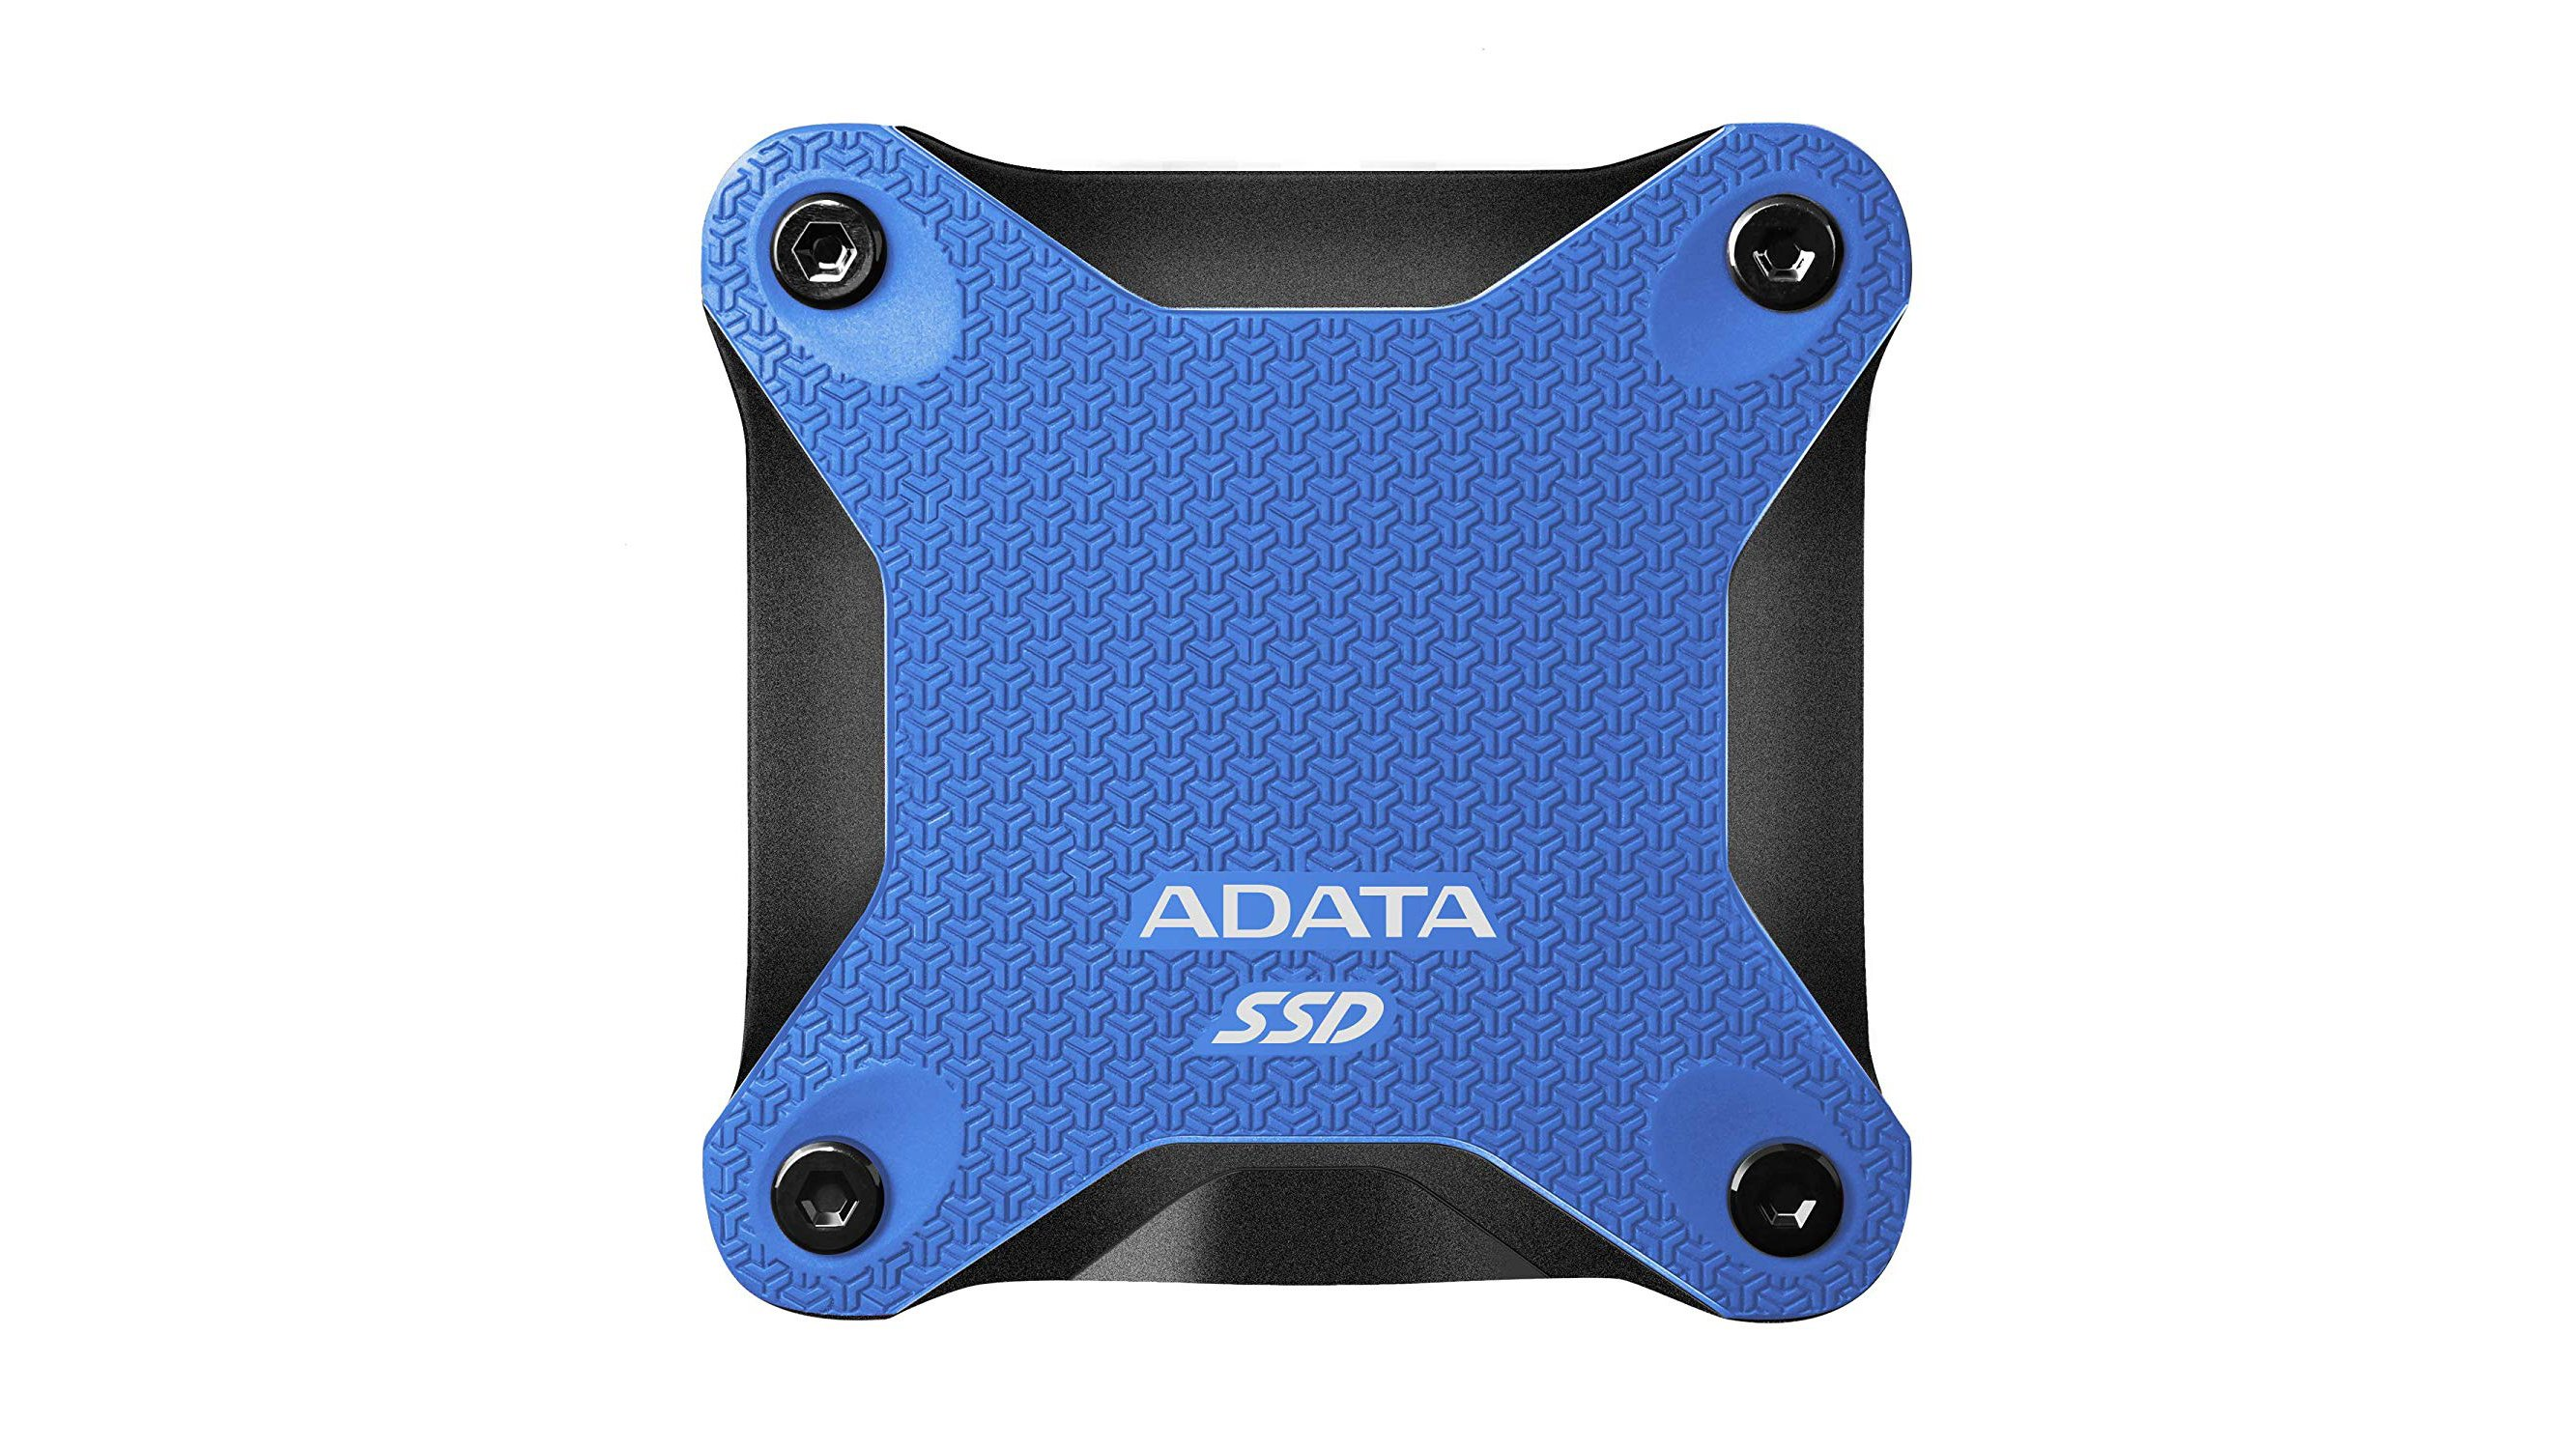 Adata SD600Q review: A capable, budget-friendly SSD | Expert